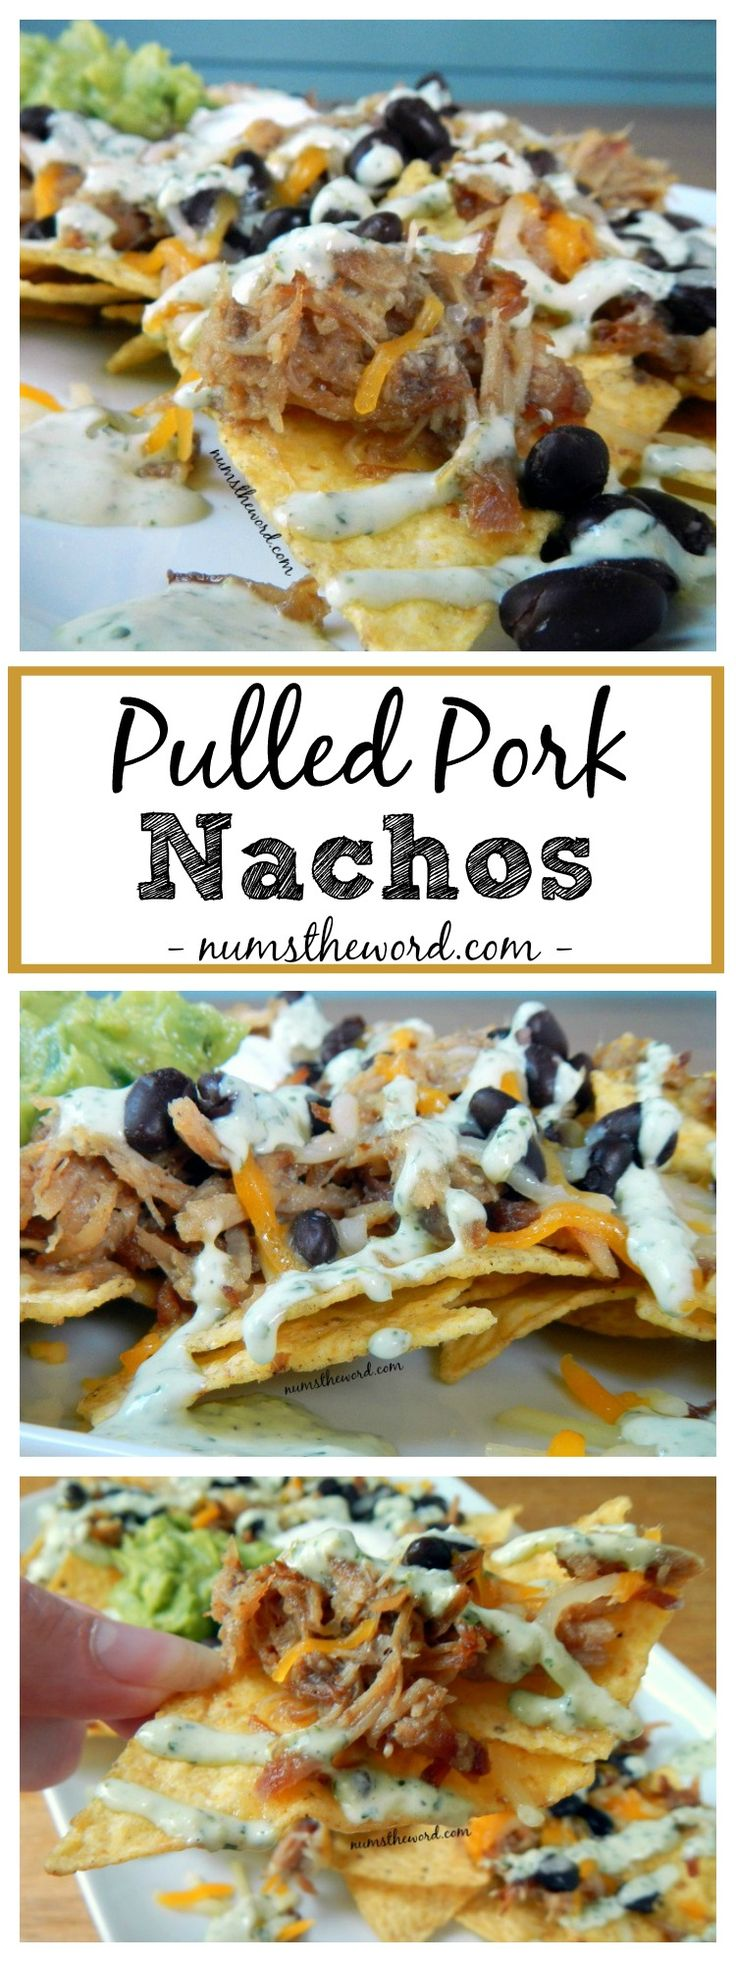 These Pulled Pork Nachos aren't your everyday Nachos. Pulled Pork, black beans, tomatoes, cheese & cilantro lime dressing make these out of this world delicious!  A great way to use up leftover pulled pork!